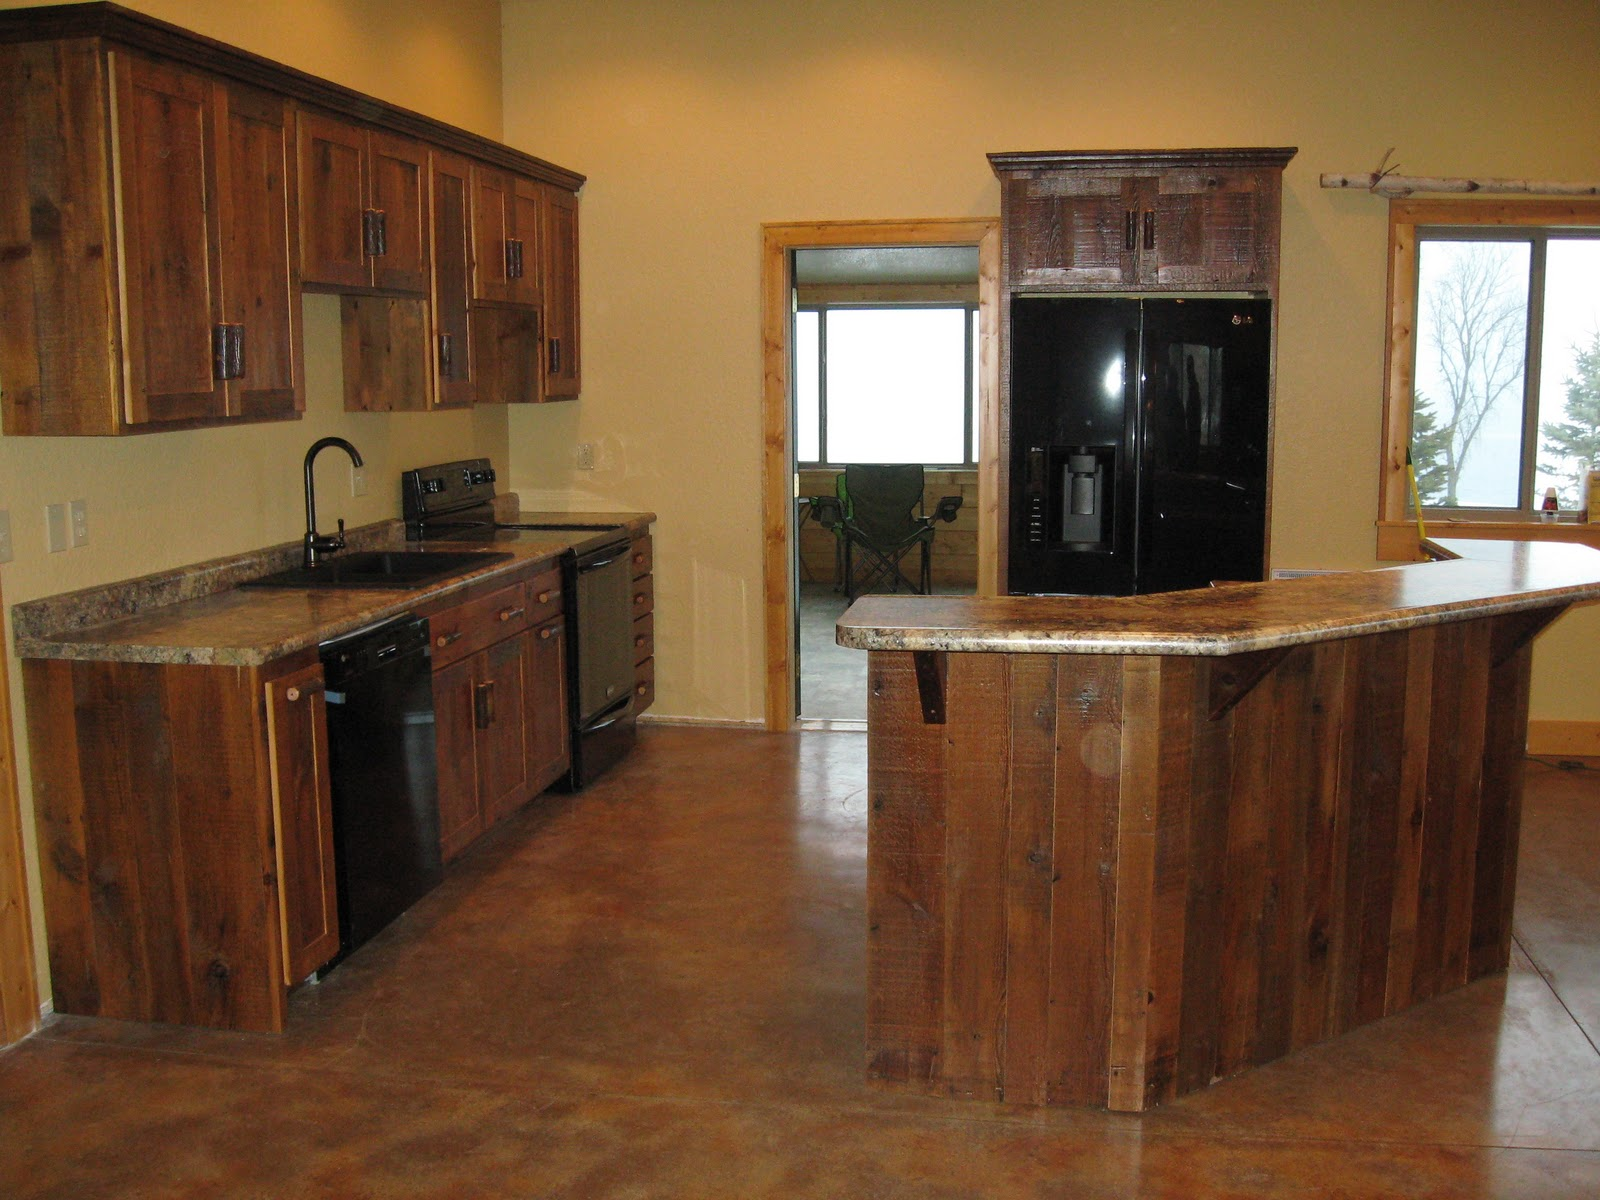 rustic kitchen cabinets reclaimed wood rustic kitchen cabinets Rustic Kitchen Cabinets Reclaimed Wood Kitchen Cabinets from Barnwood